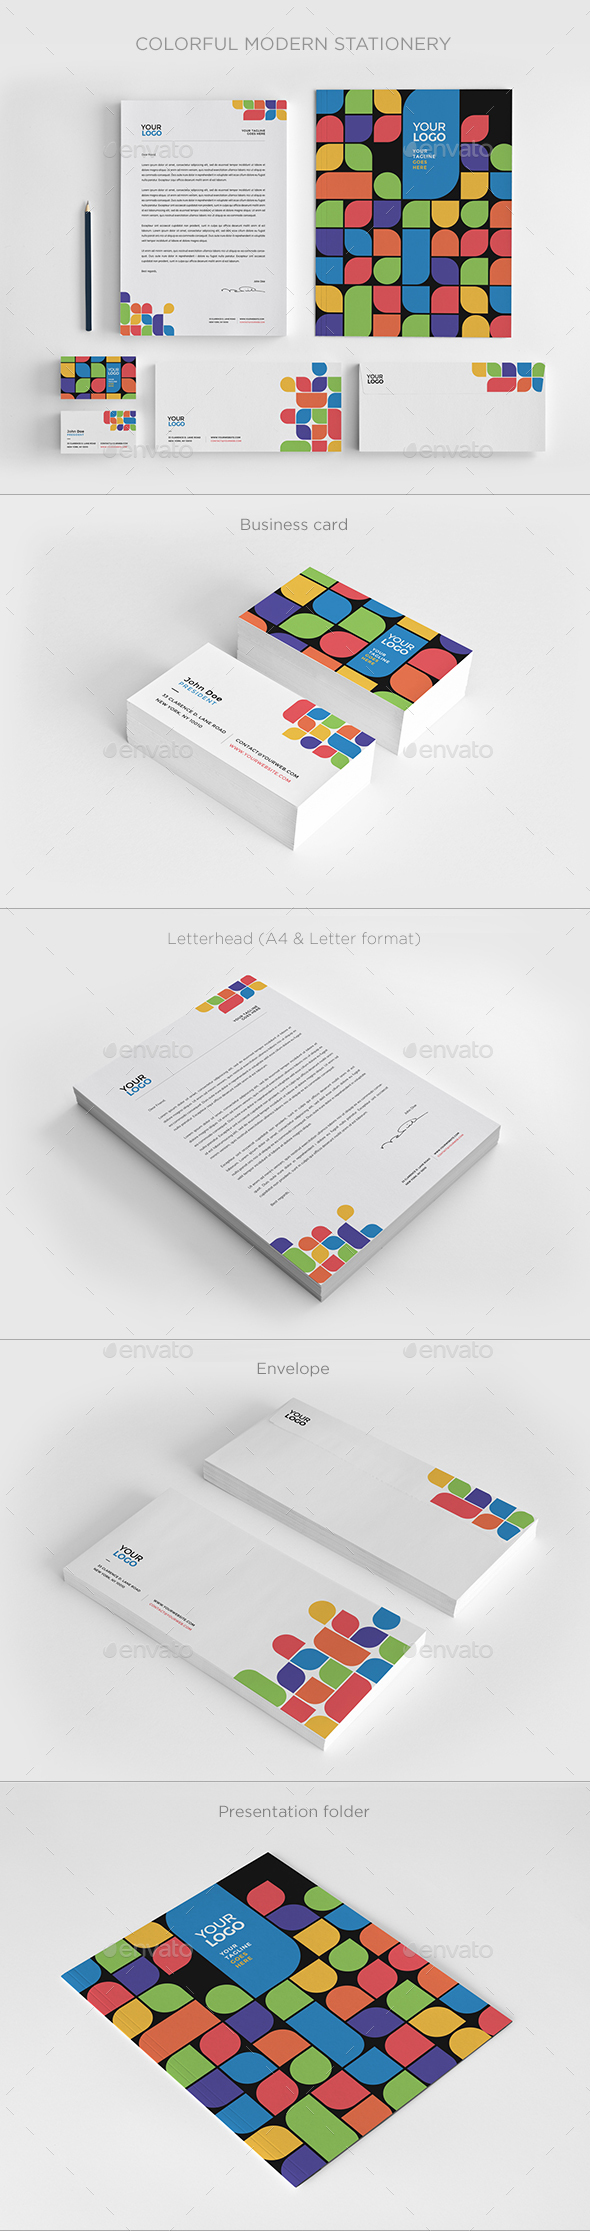 Colorful Modern Stationery - Stationery Print Templates